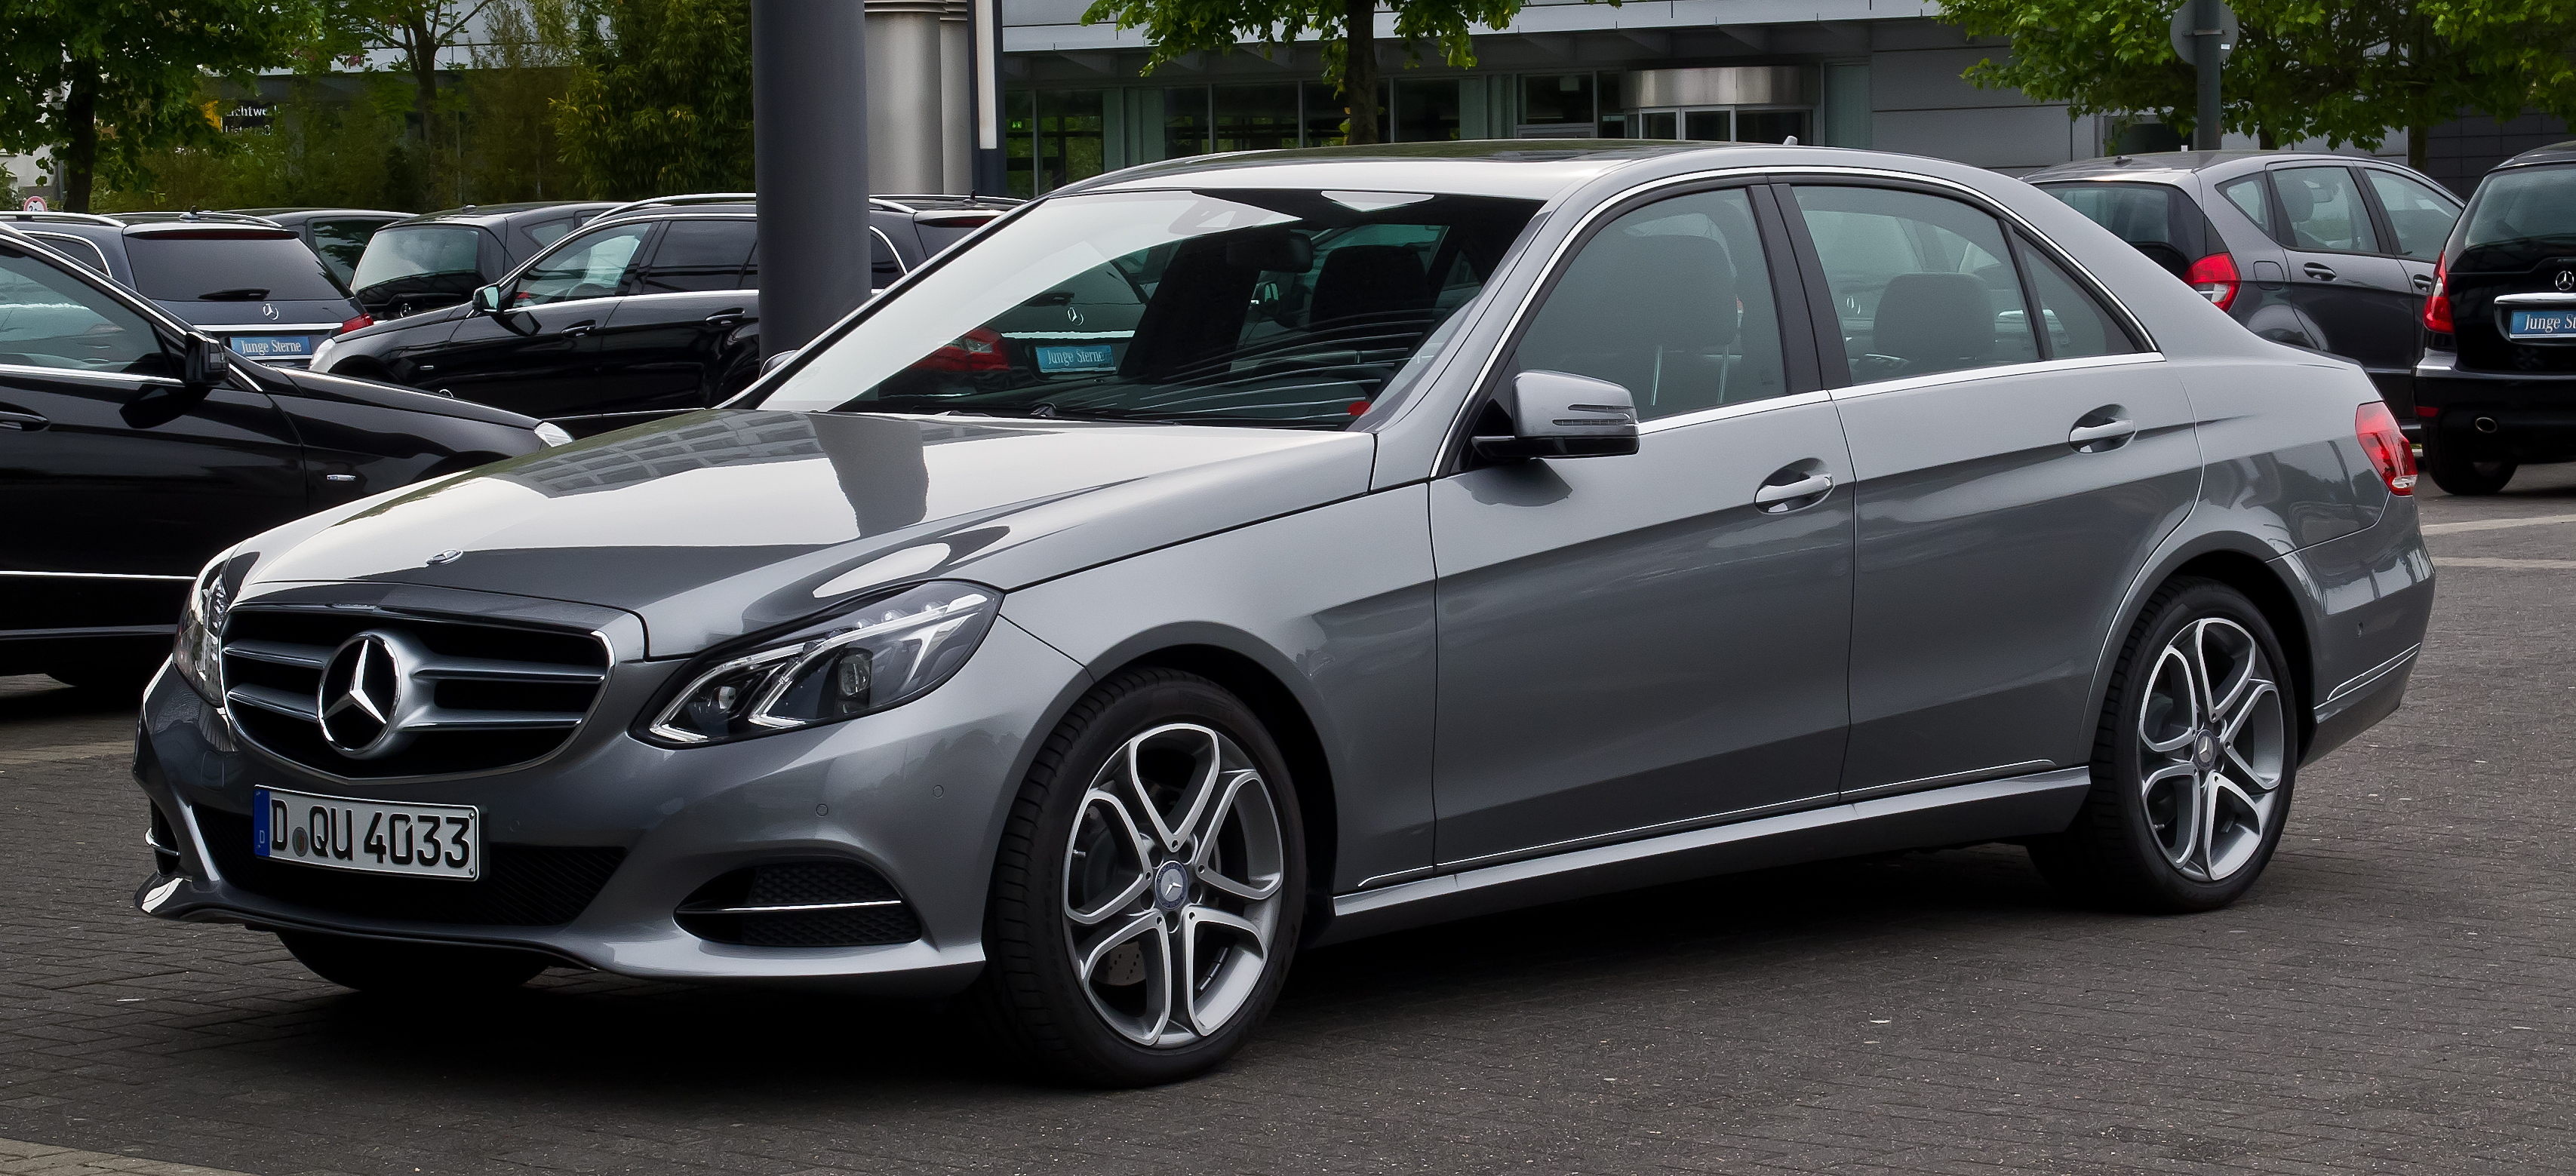 Mercedes-Benz E-Class (W212) - Wikipedia, the free encyclopedia